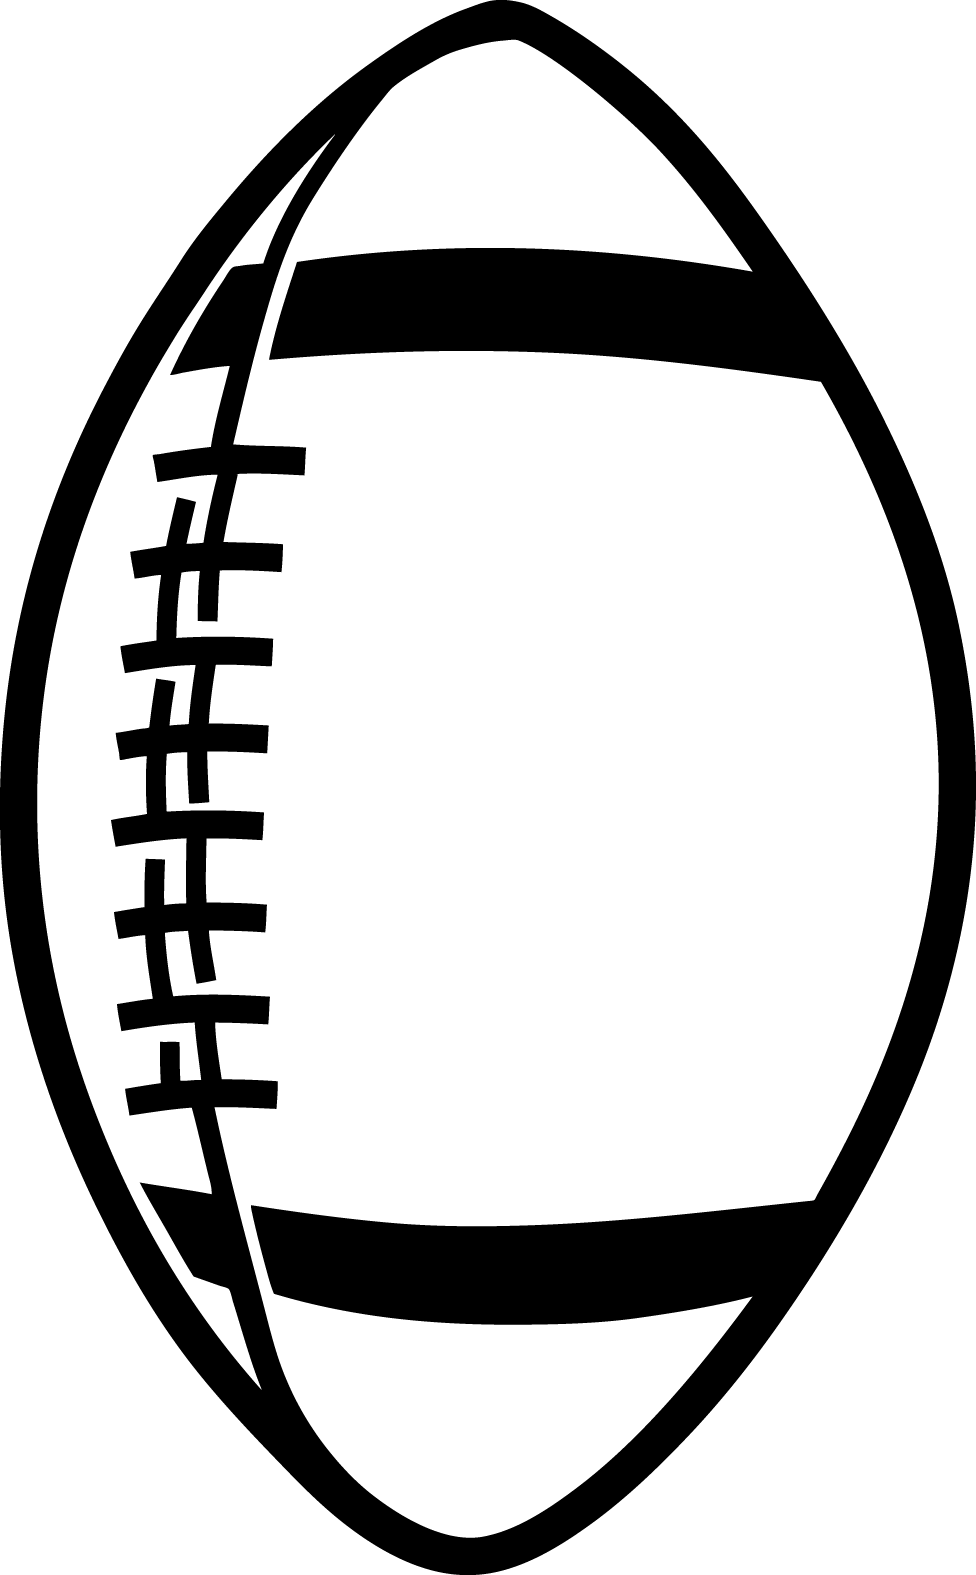 976x1575 Best Football Outline Clipart